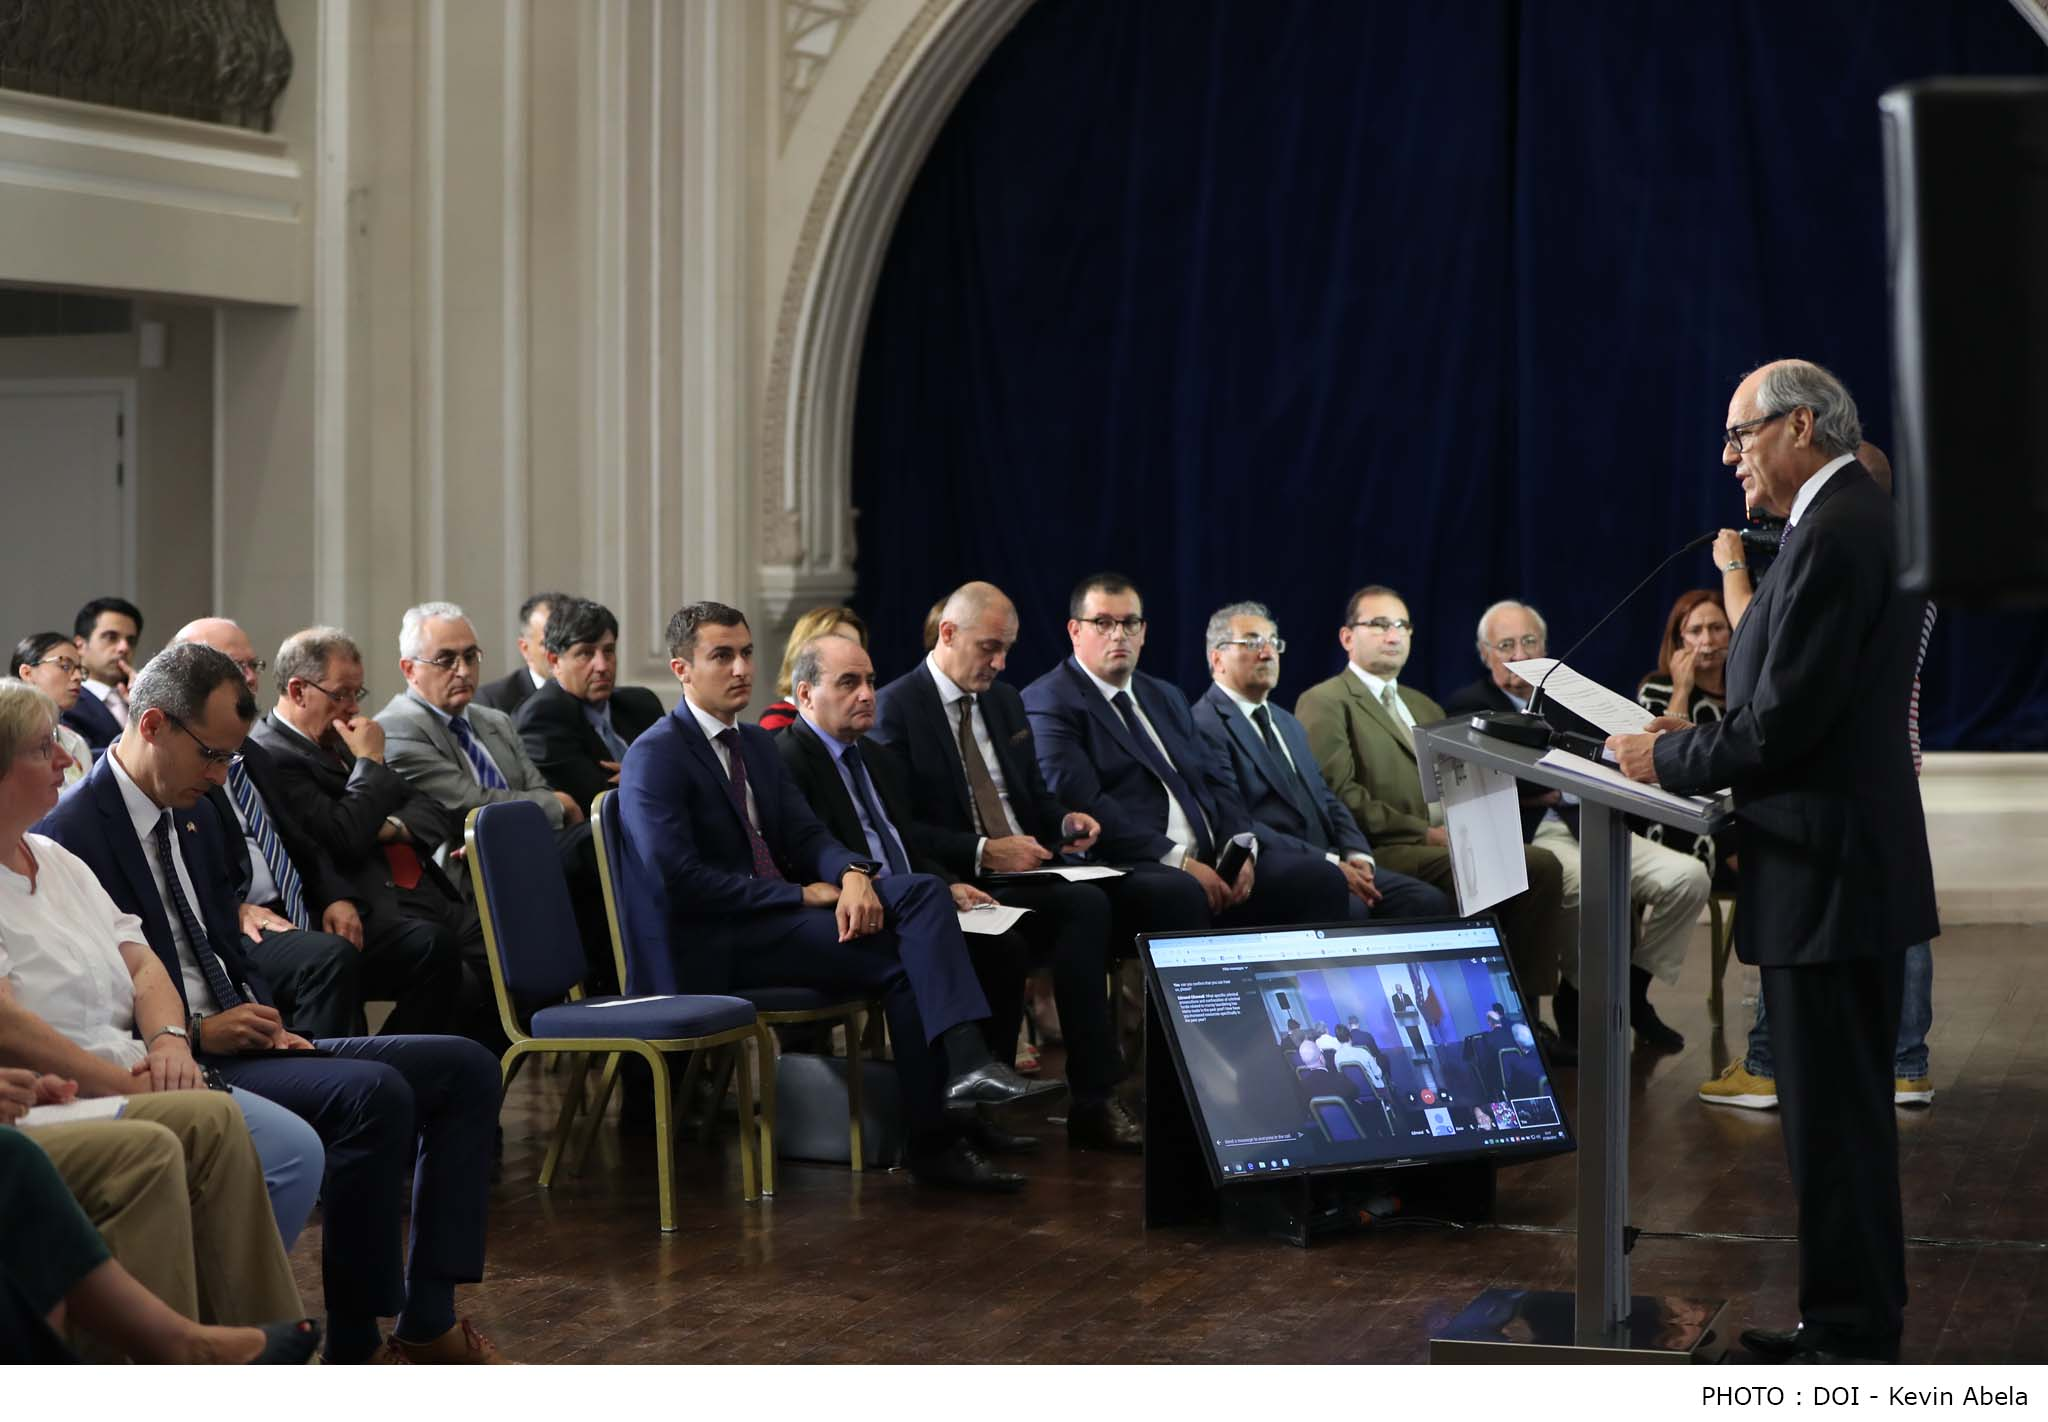 PRESS RELEASE BY THE MINISTRY FOR FINANCE  Malta announces major reforms to strengthen the fight against financial crime